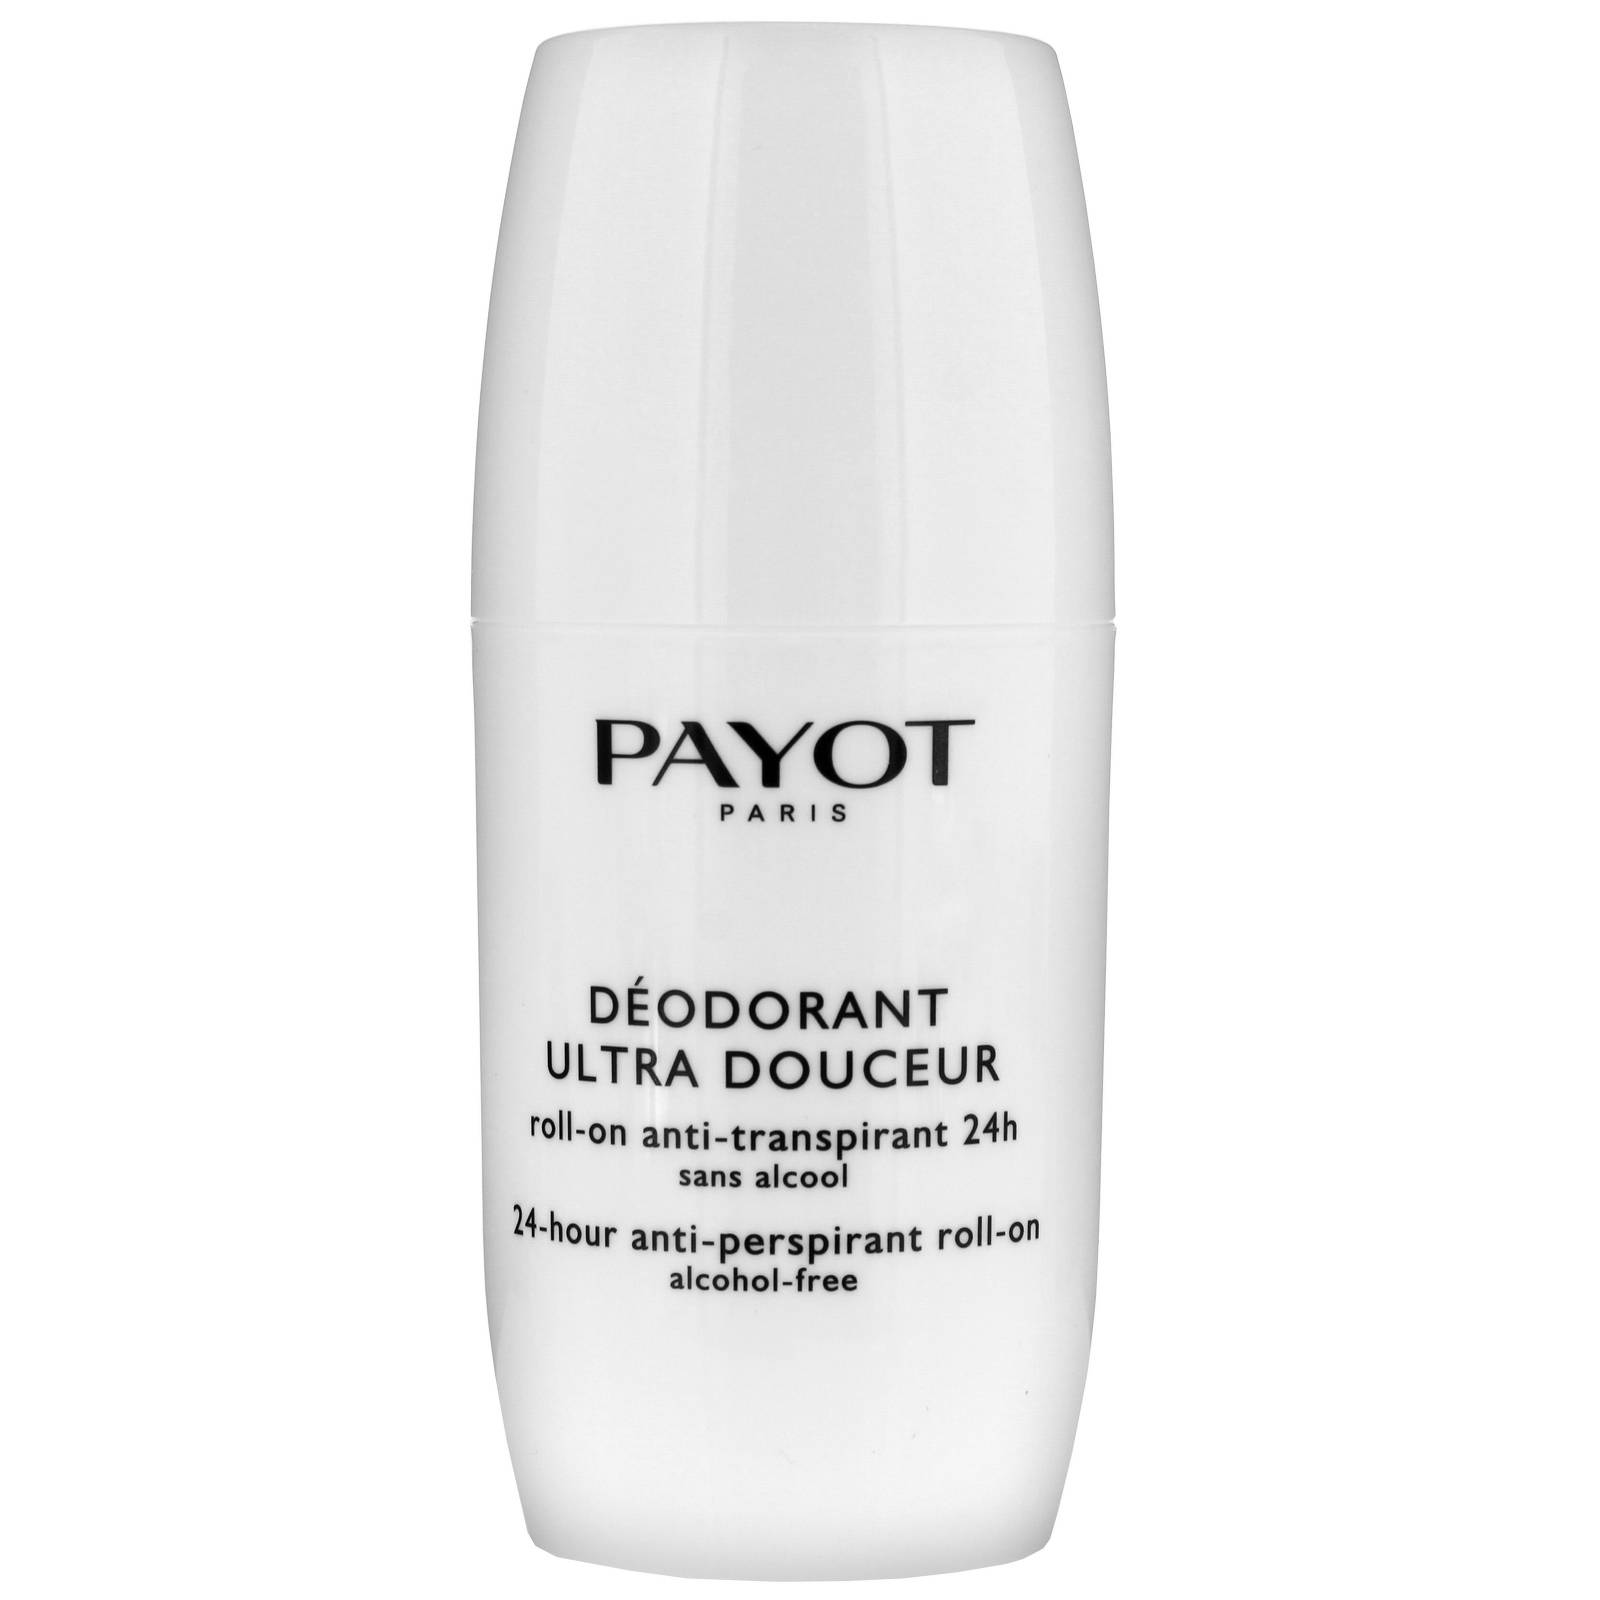 Payot Paris Gentle Body Déodorant Ultra Douceur: Alcohol-Free Softening Roll On Deodorant 75ml (TBC check against DBID 1233643)